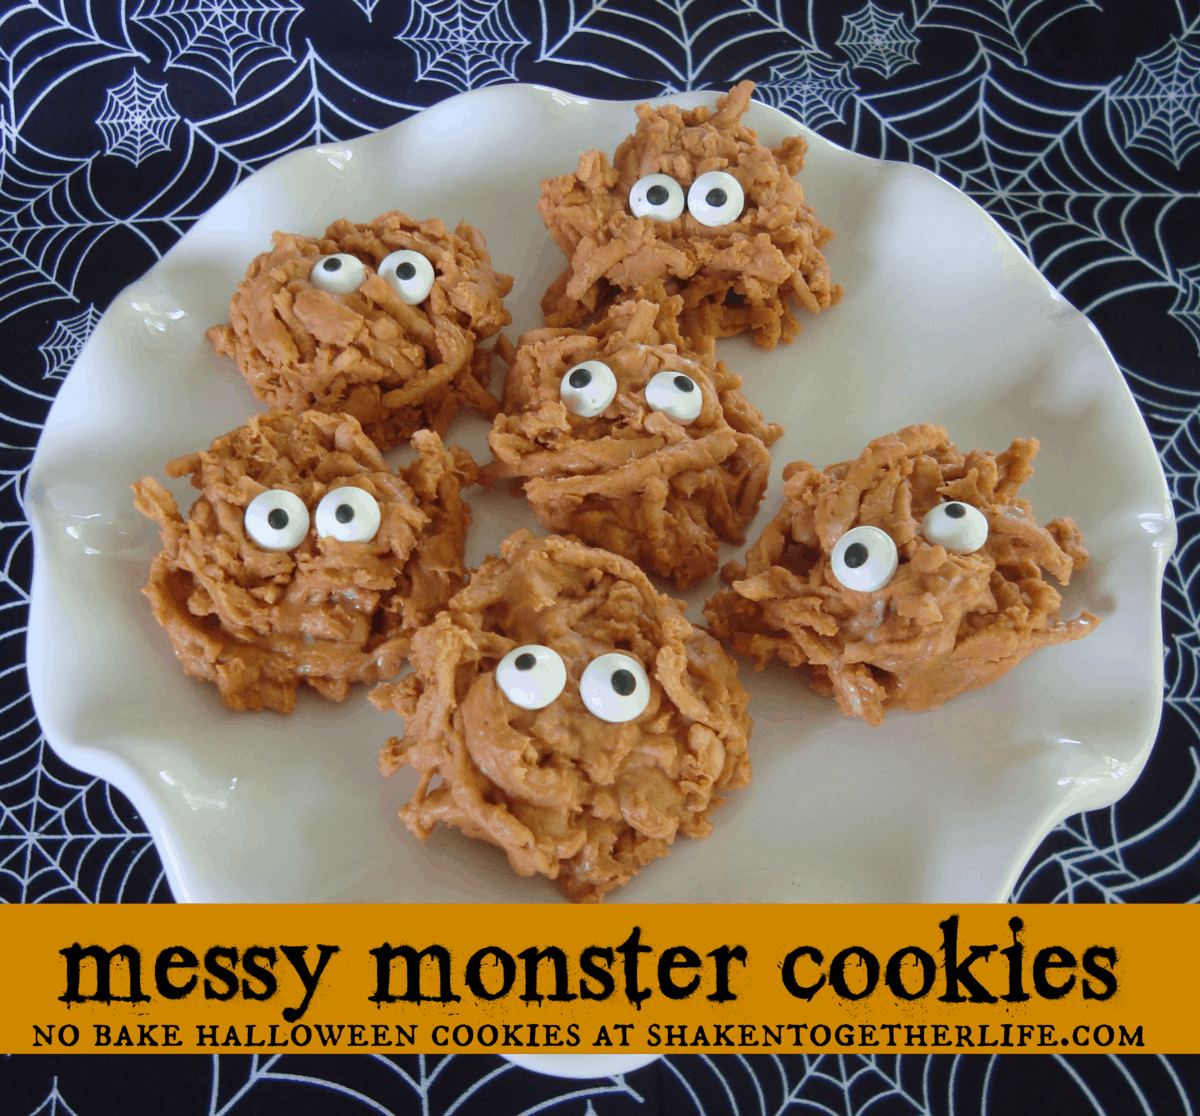 Messy monster cookies no bake Halloween cookies at shakentogetherlife.com